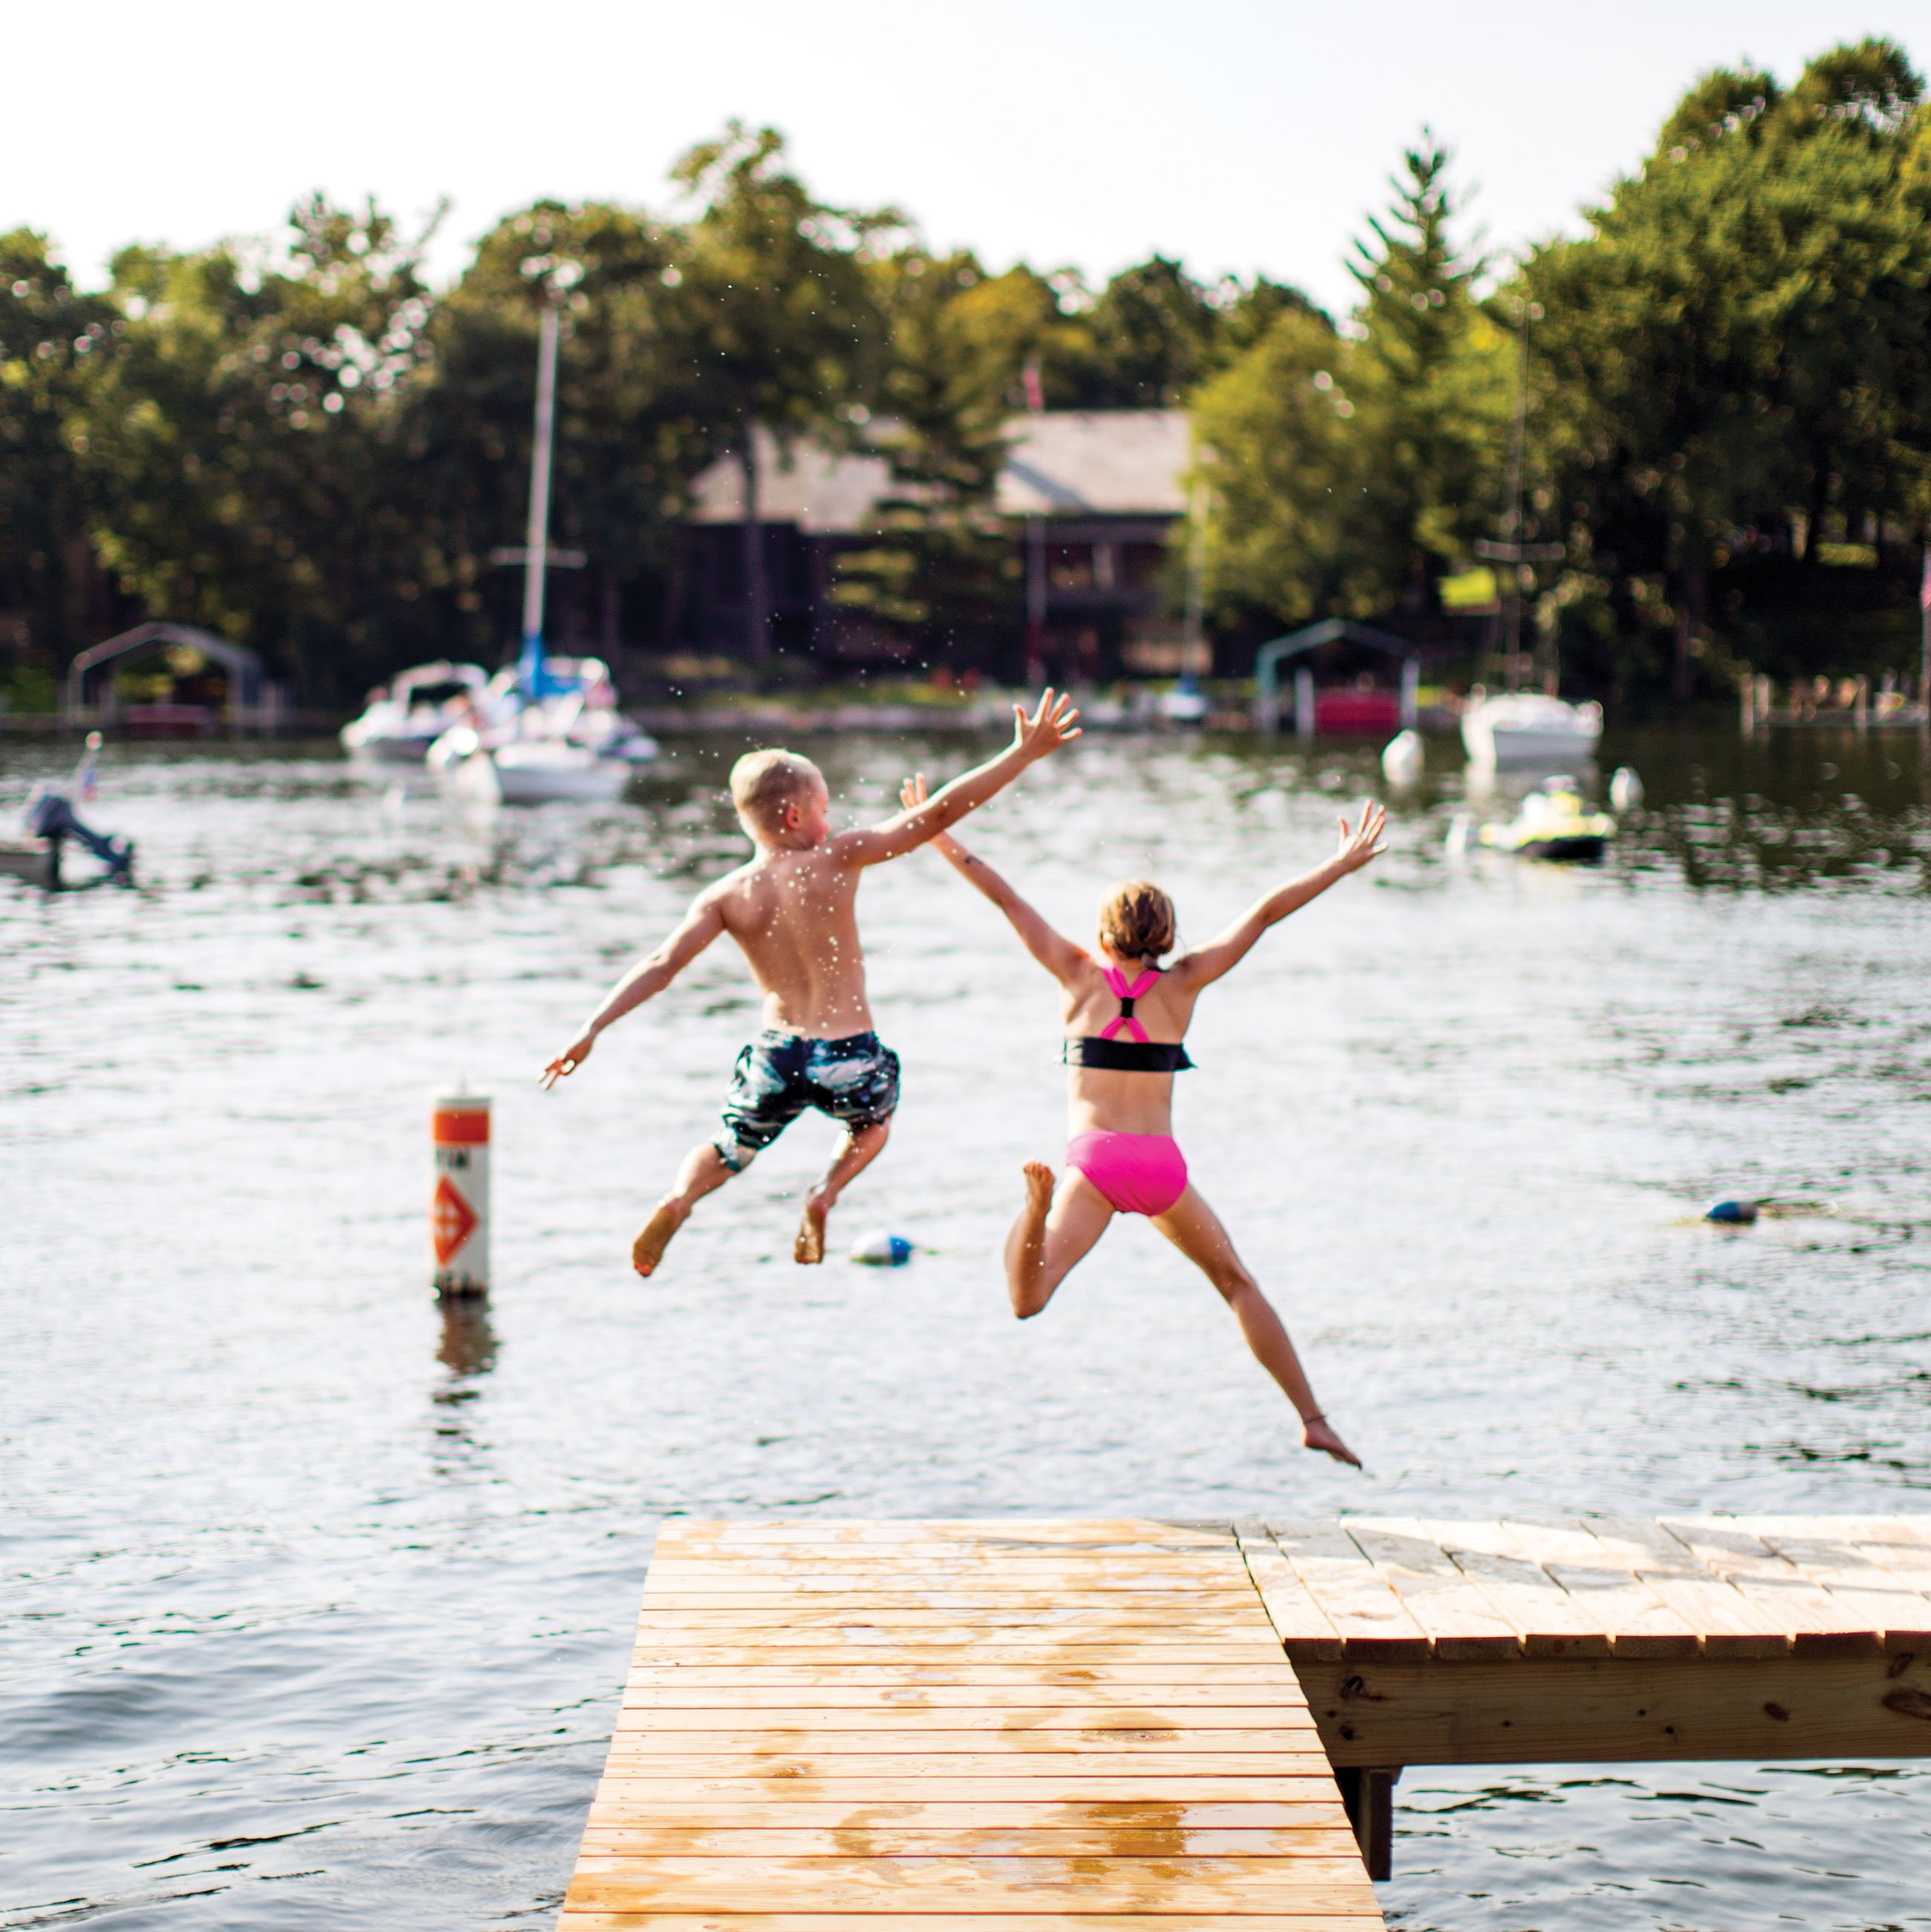 The Best of Lake Minnetonka: Where to Eat, Boat, Drink, and